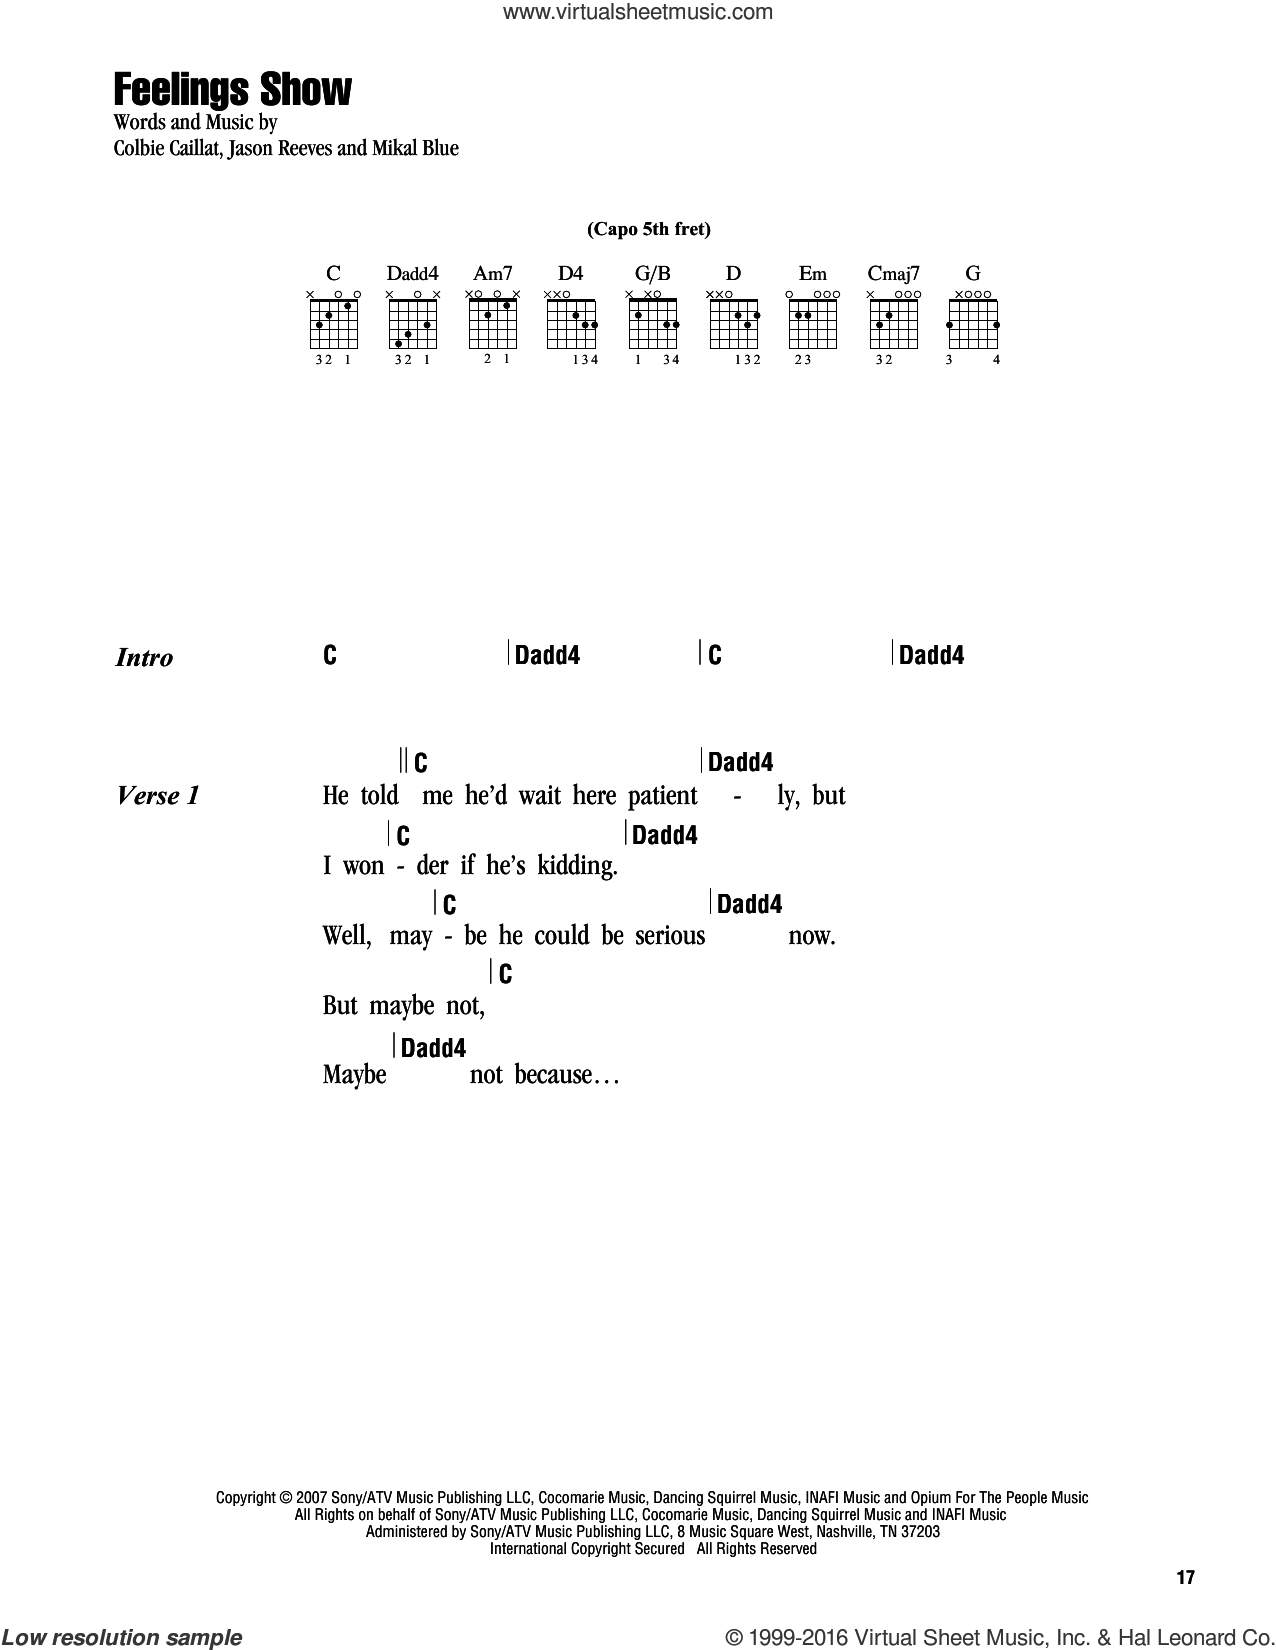 Feelings Show sheet music for guitar (chords) by Colbie Caillat, Jason Reeves and Mikal Blue, intermediate skill level